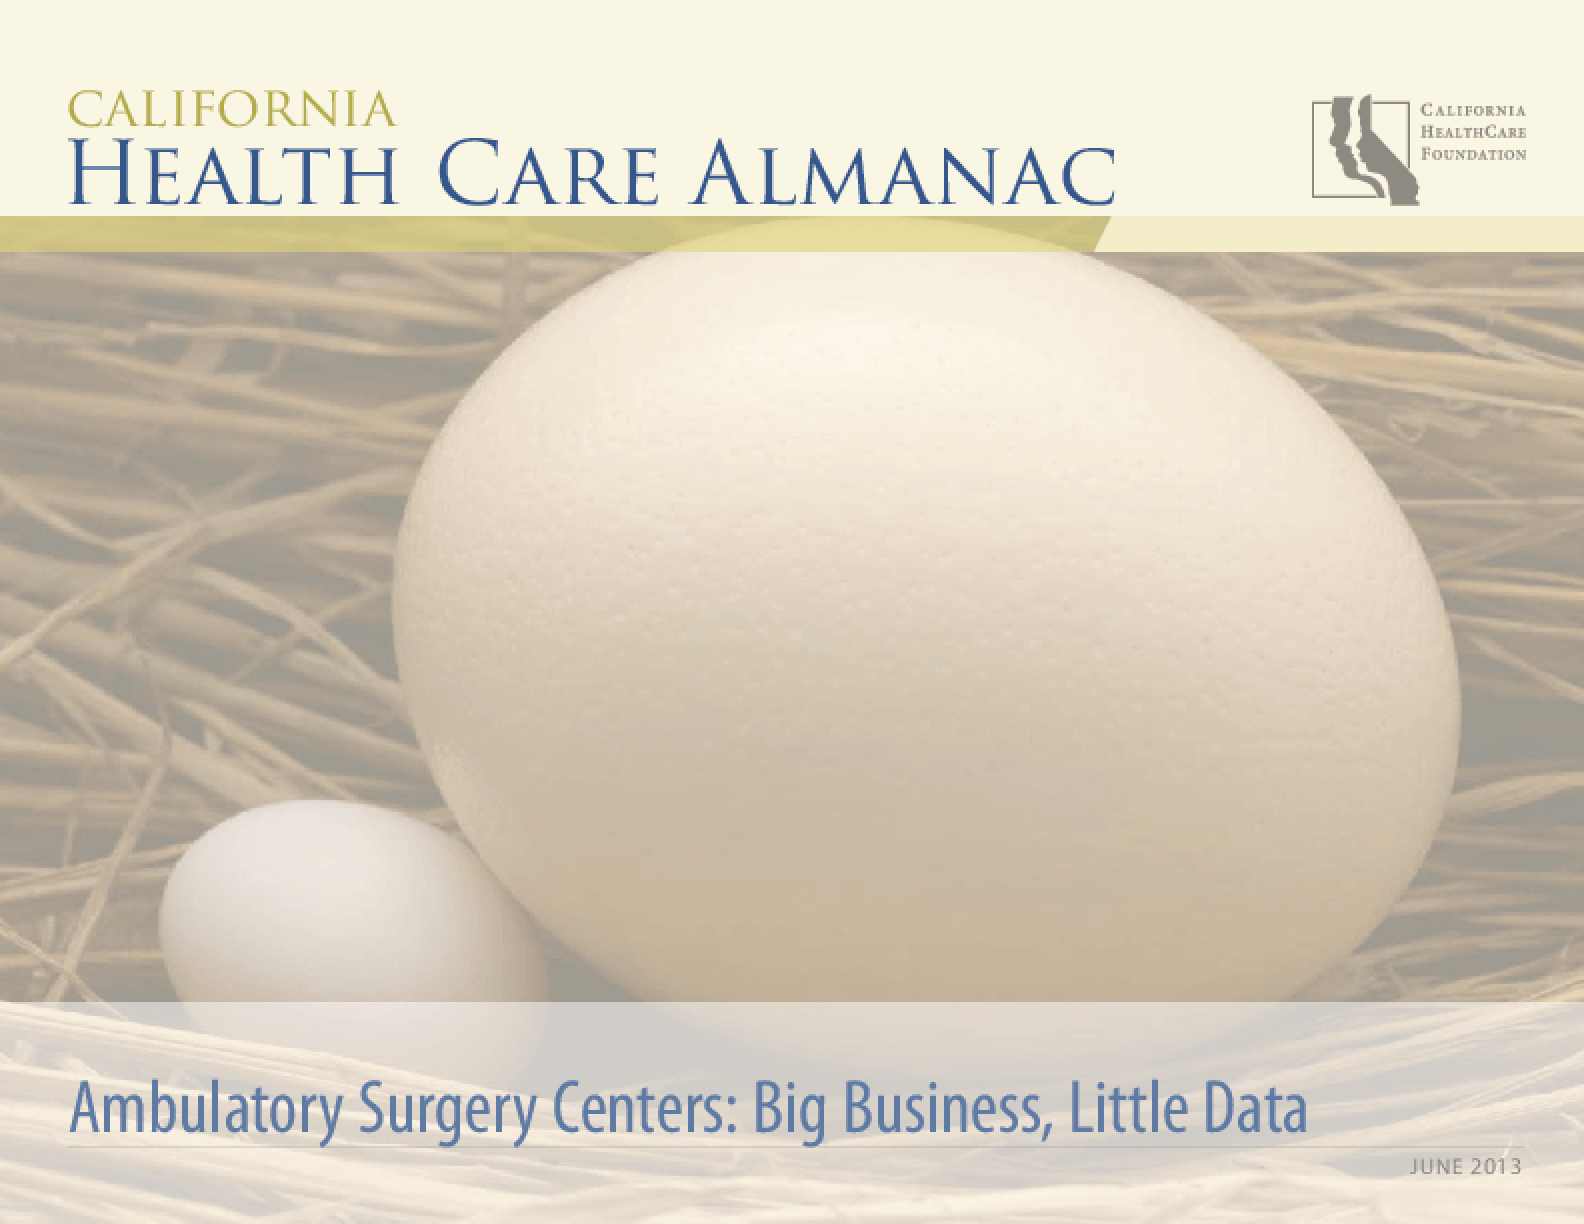 Ambulatory Surgery Centers: Big Business, Little Data